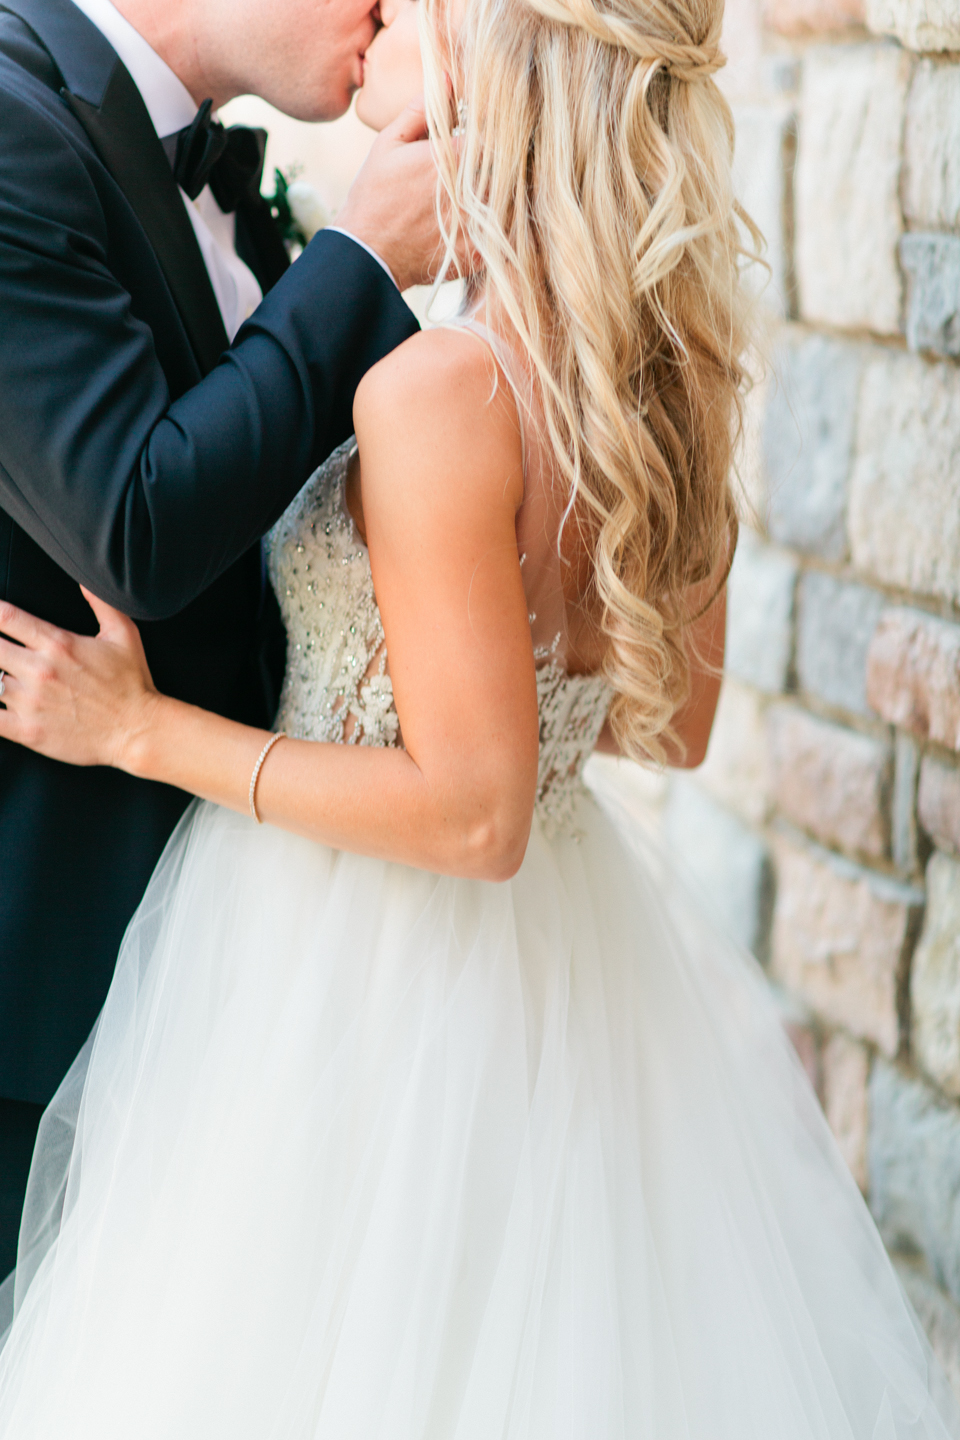 Image of a groom kissing his bride on their wedding day at TPC Sawgrass in Ponte Vedra, Florida